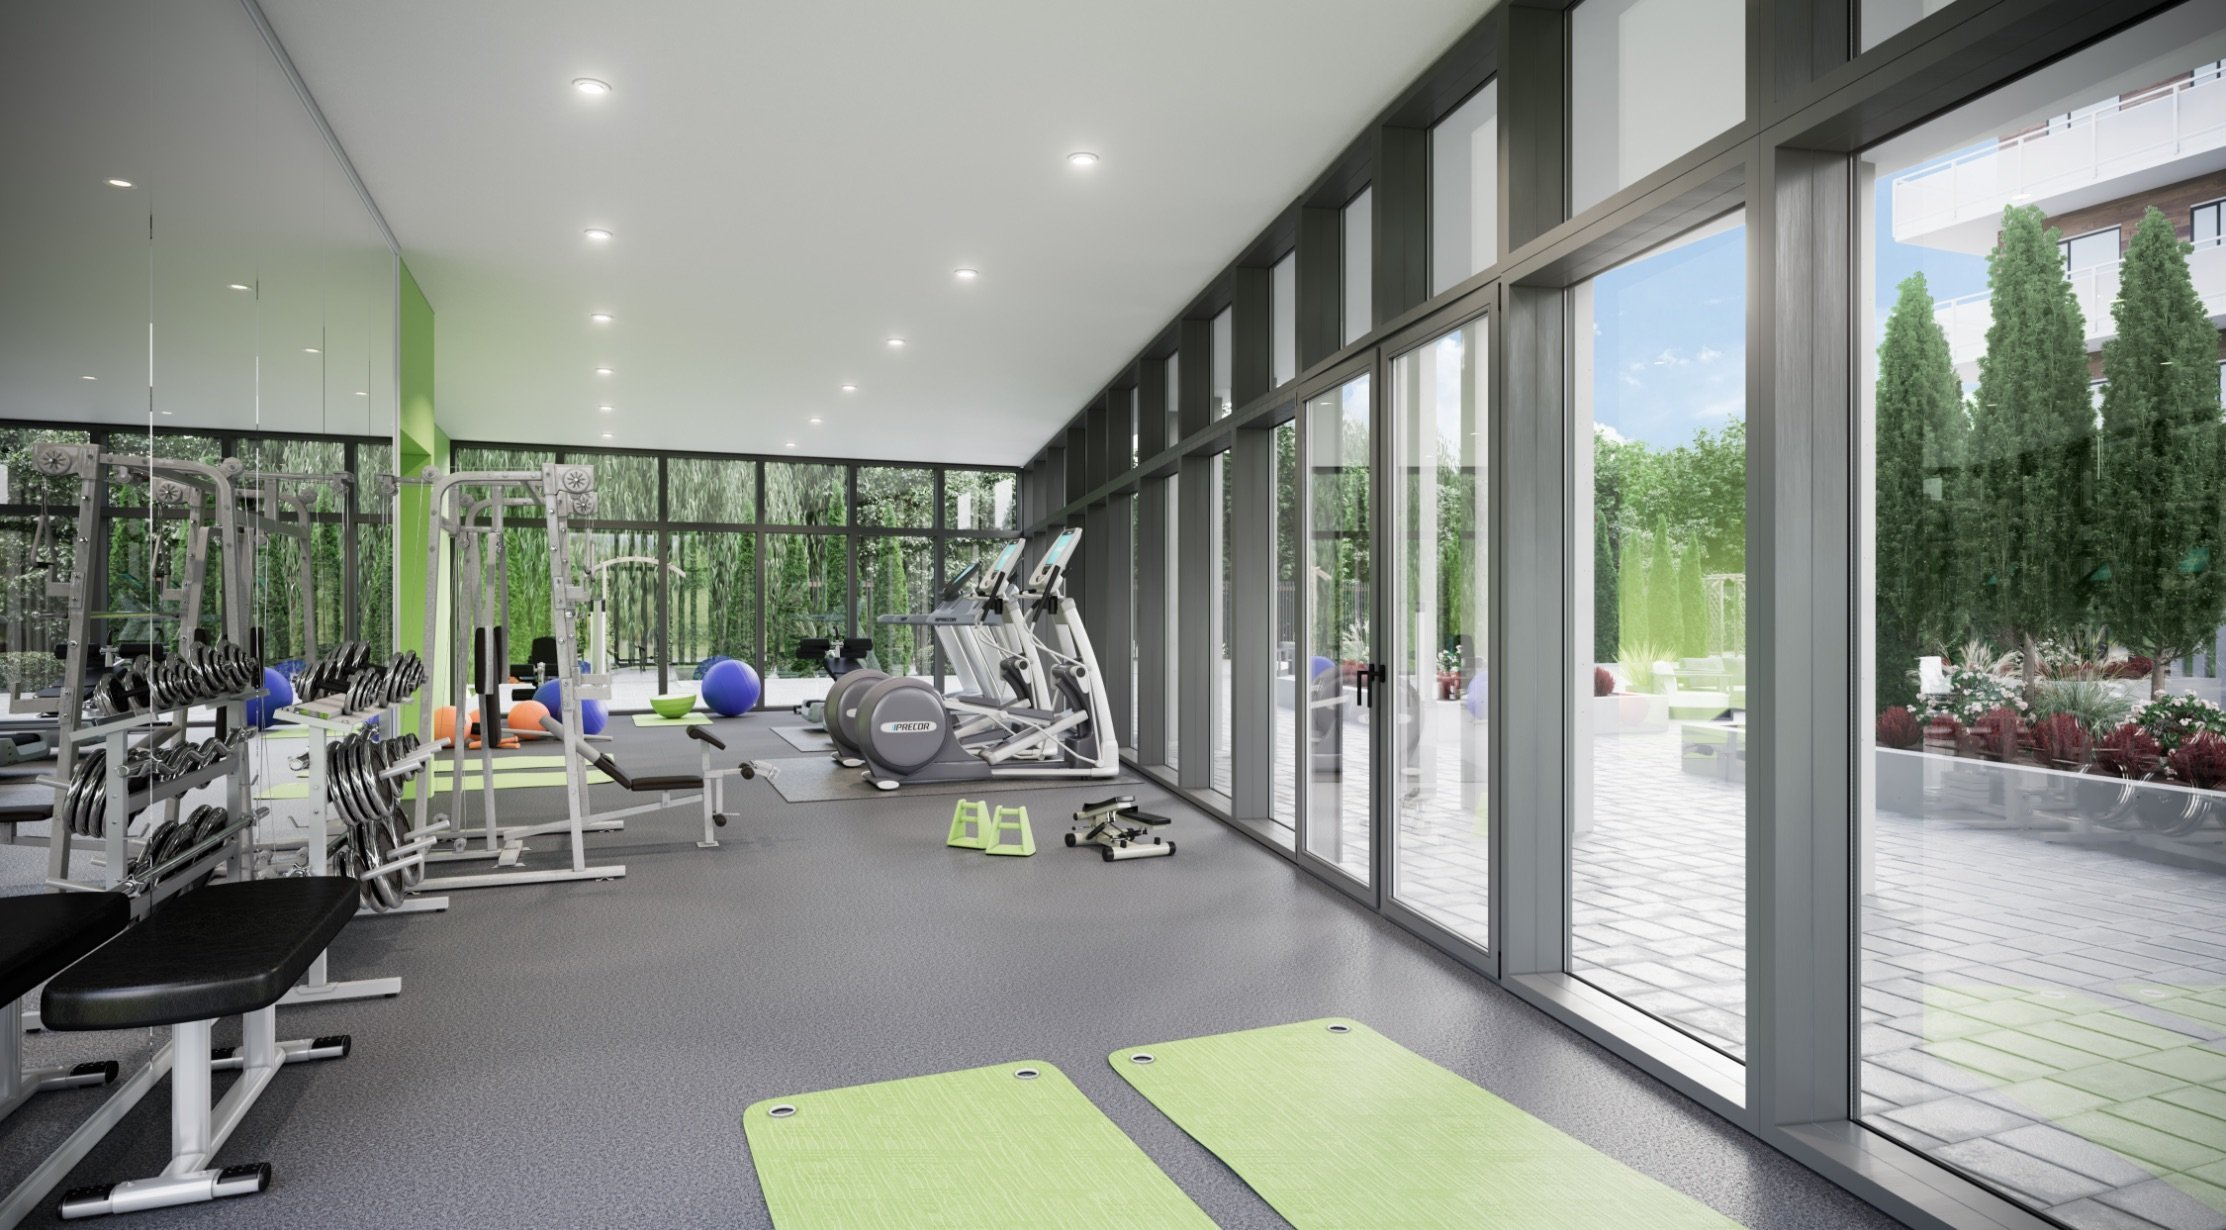 Exercise Centre - 20203 84 Ave, Langley City, BC V2Y 2B7, Canada!